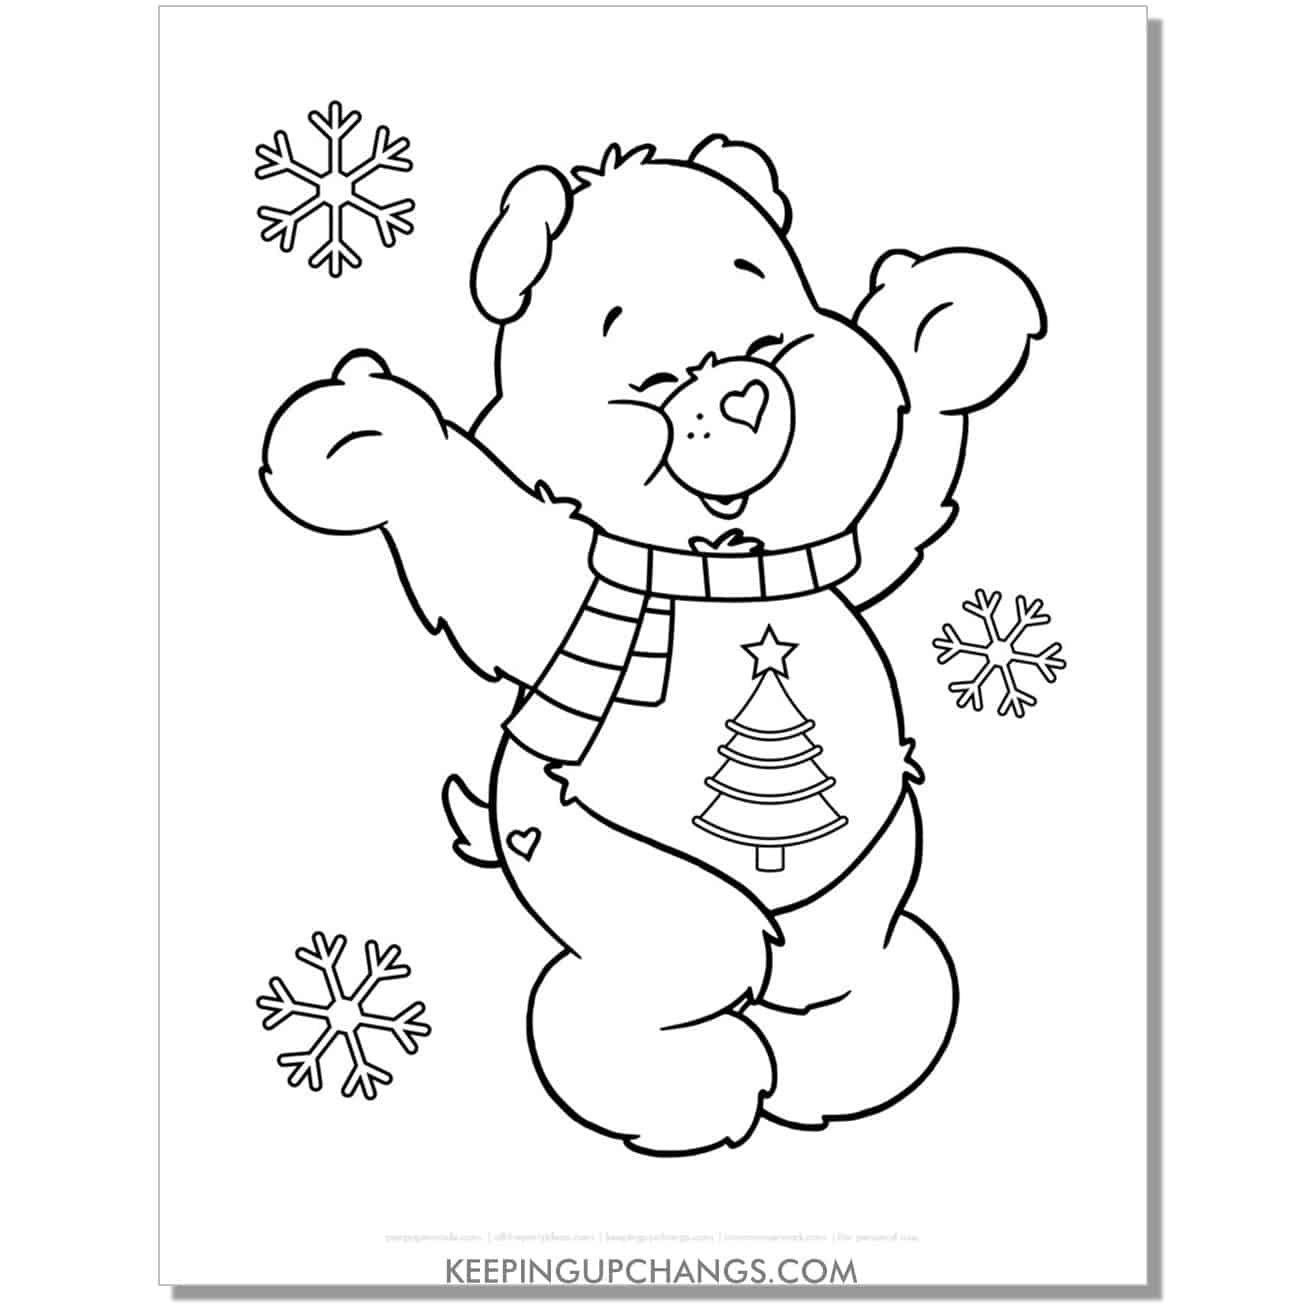 christmas wishes care bear coloring page with snowflakes.